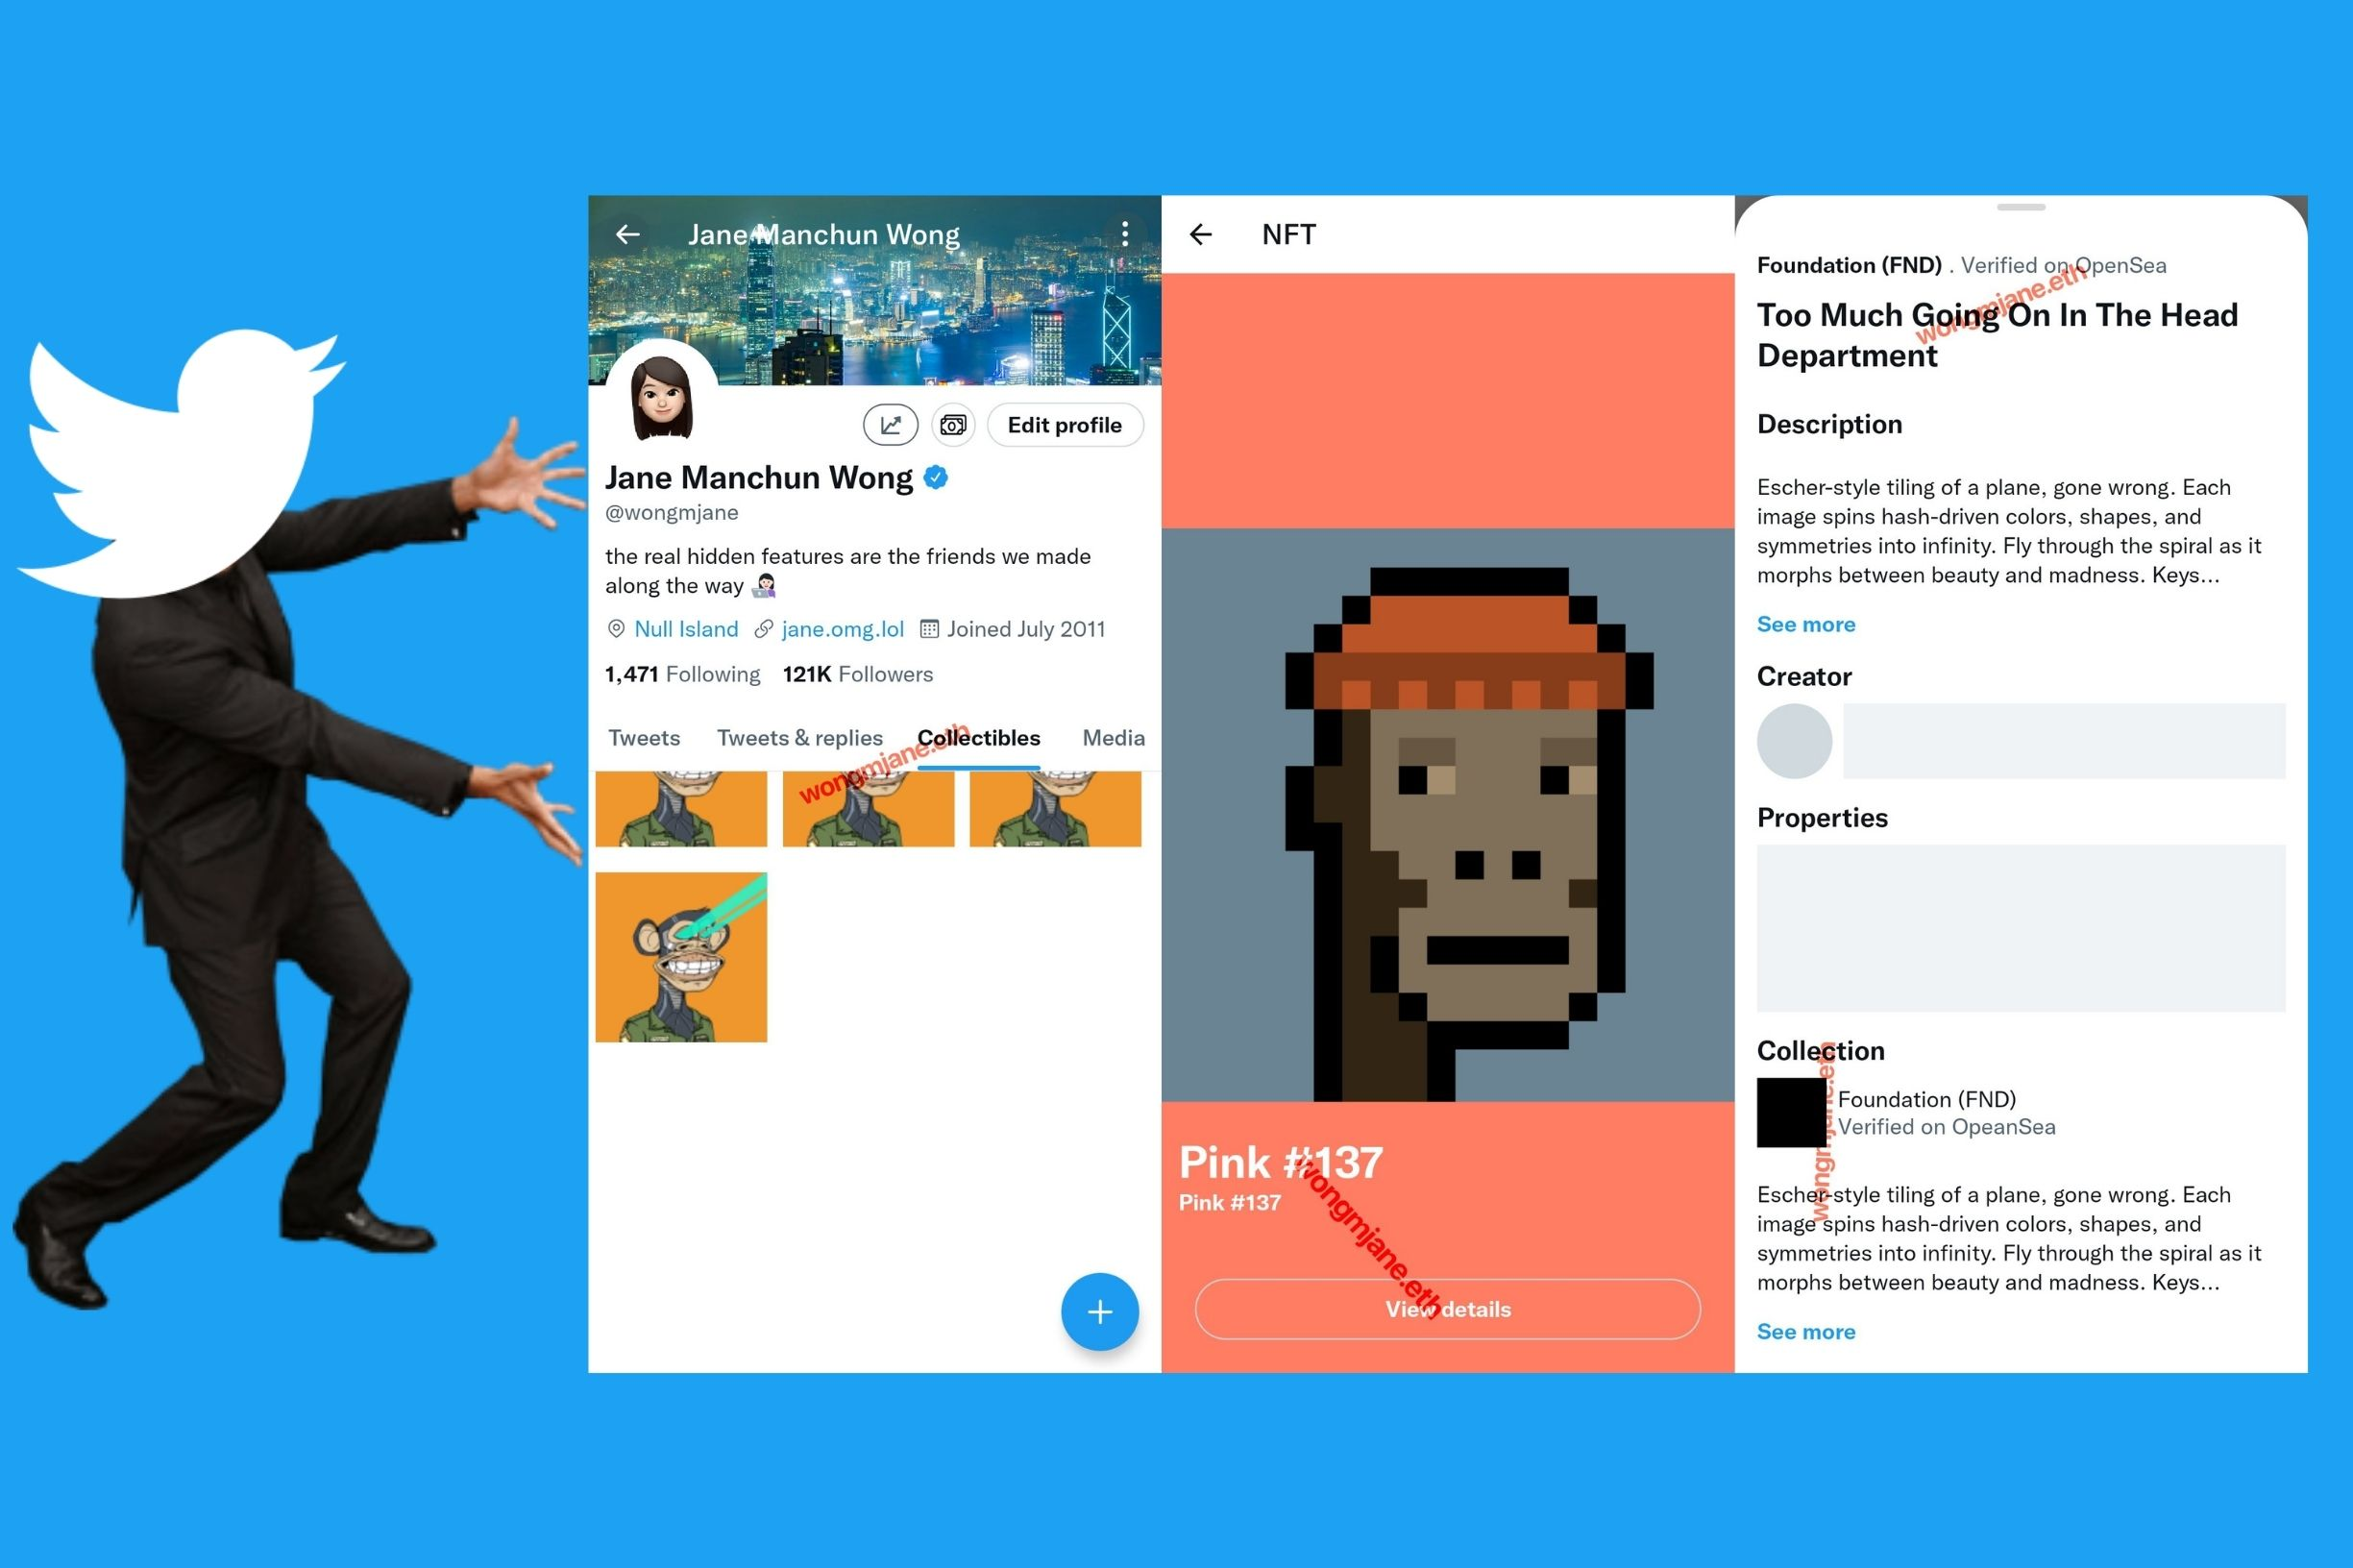 Twitter Teases Ability To Show Off NFT's Via New Collectibles Tab